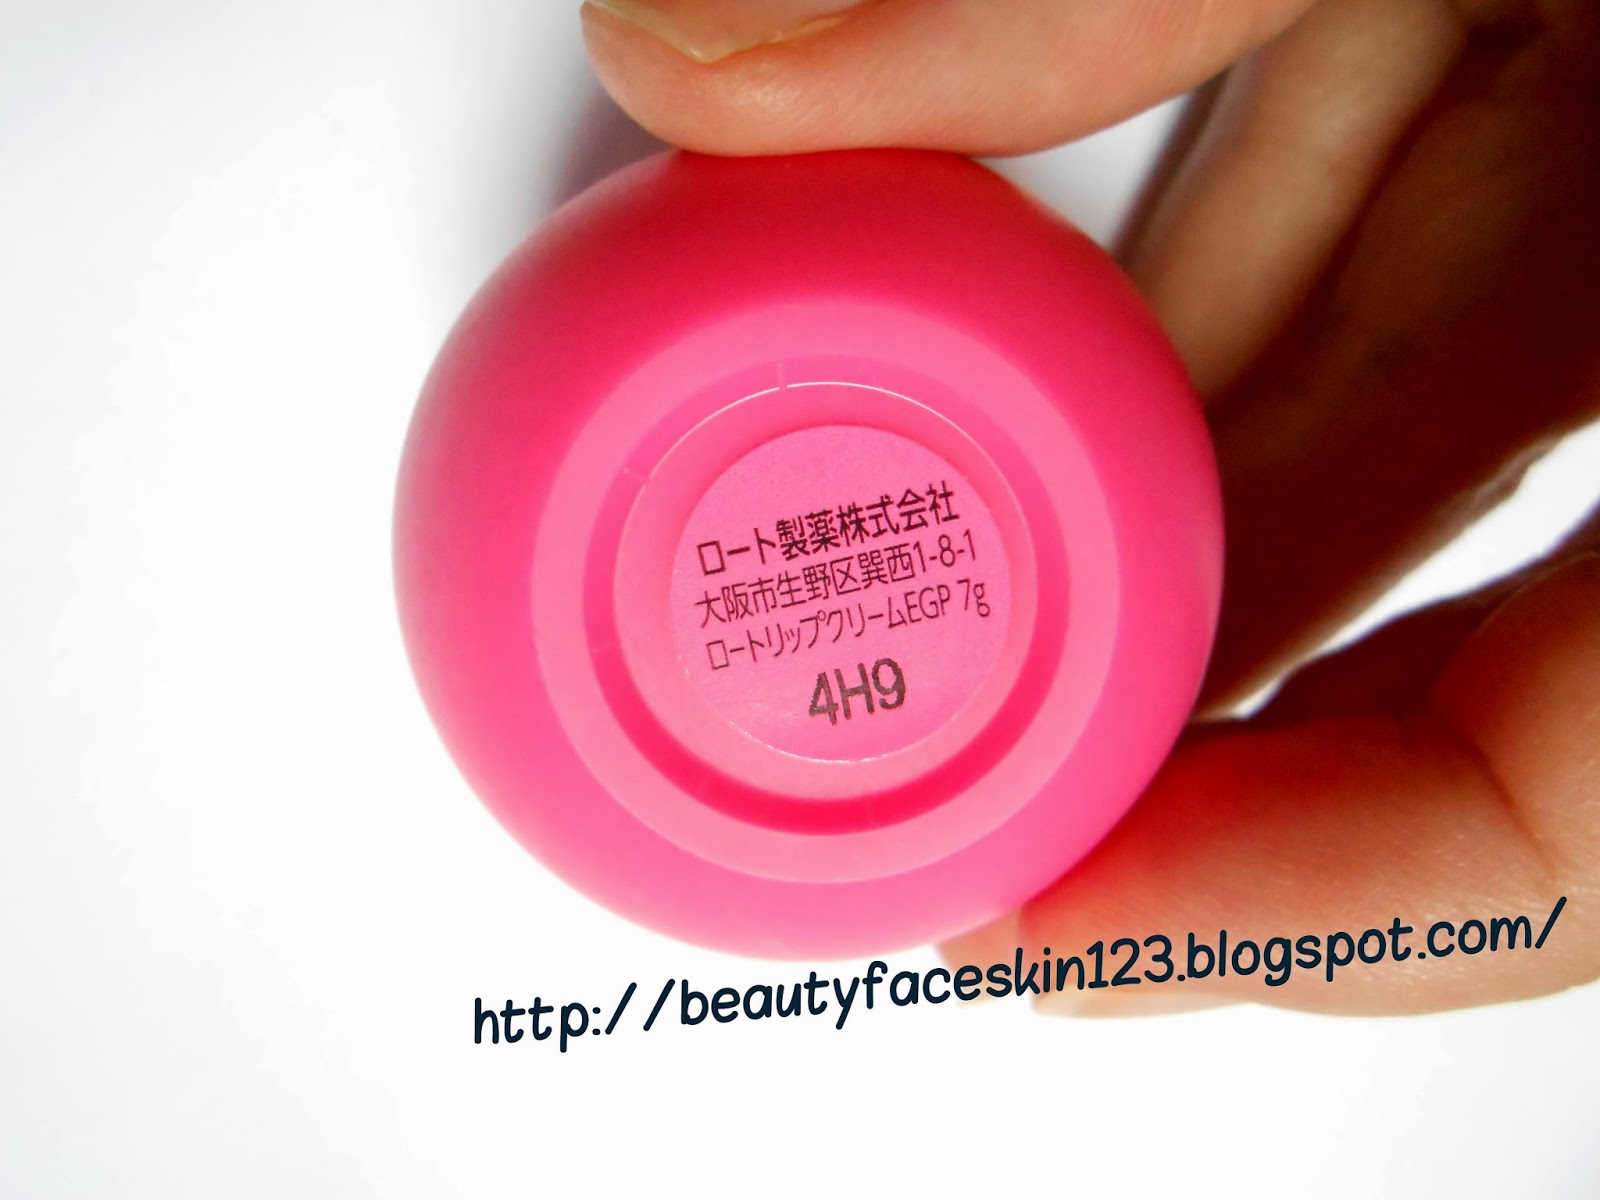 MENTHOLATUM CHU LIP- LIP BALM FROM JAPAN